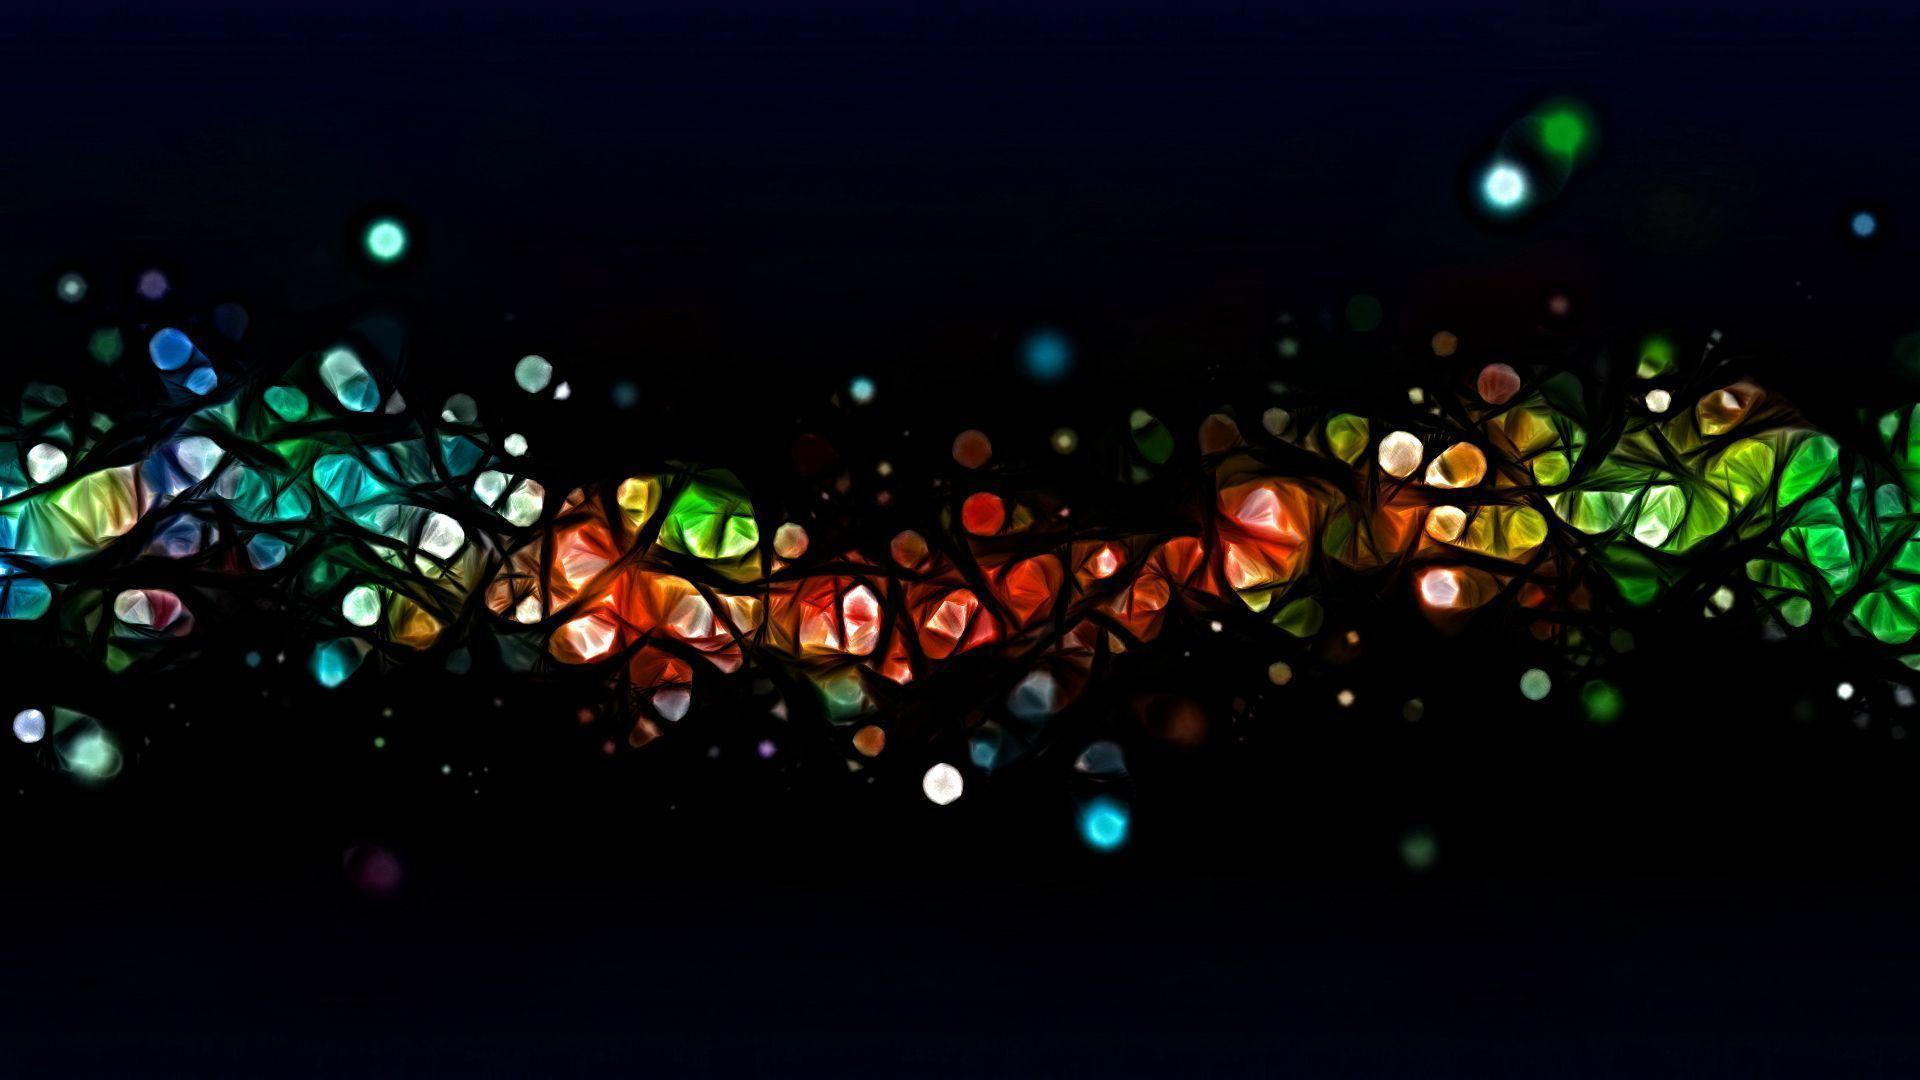 Photo editing service background wallpaper 1080p